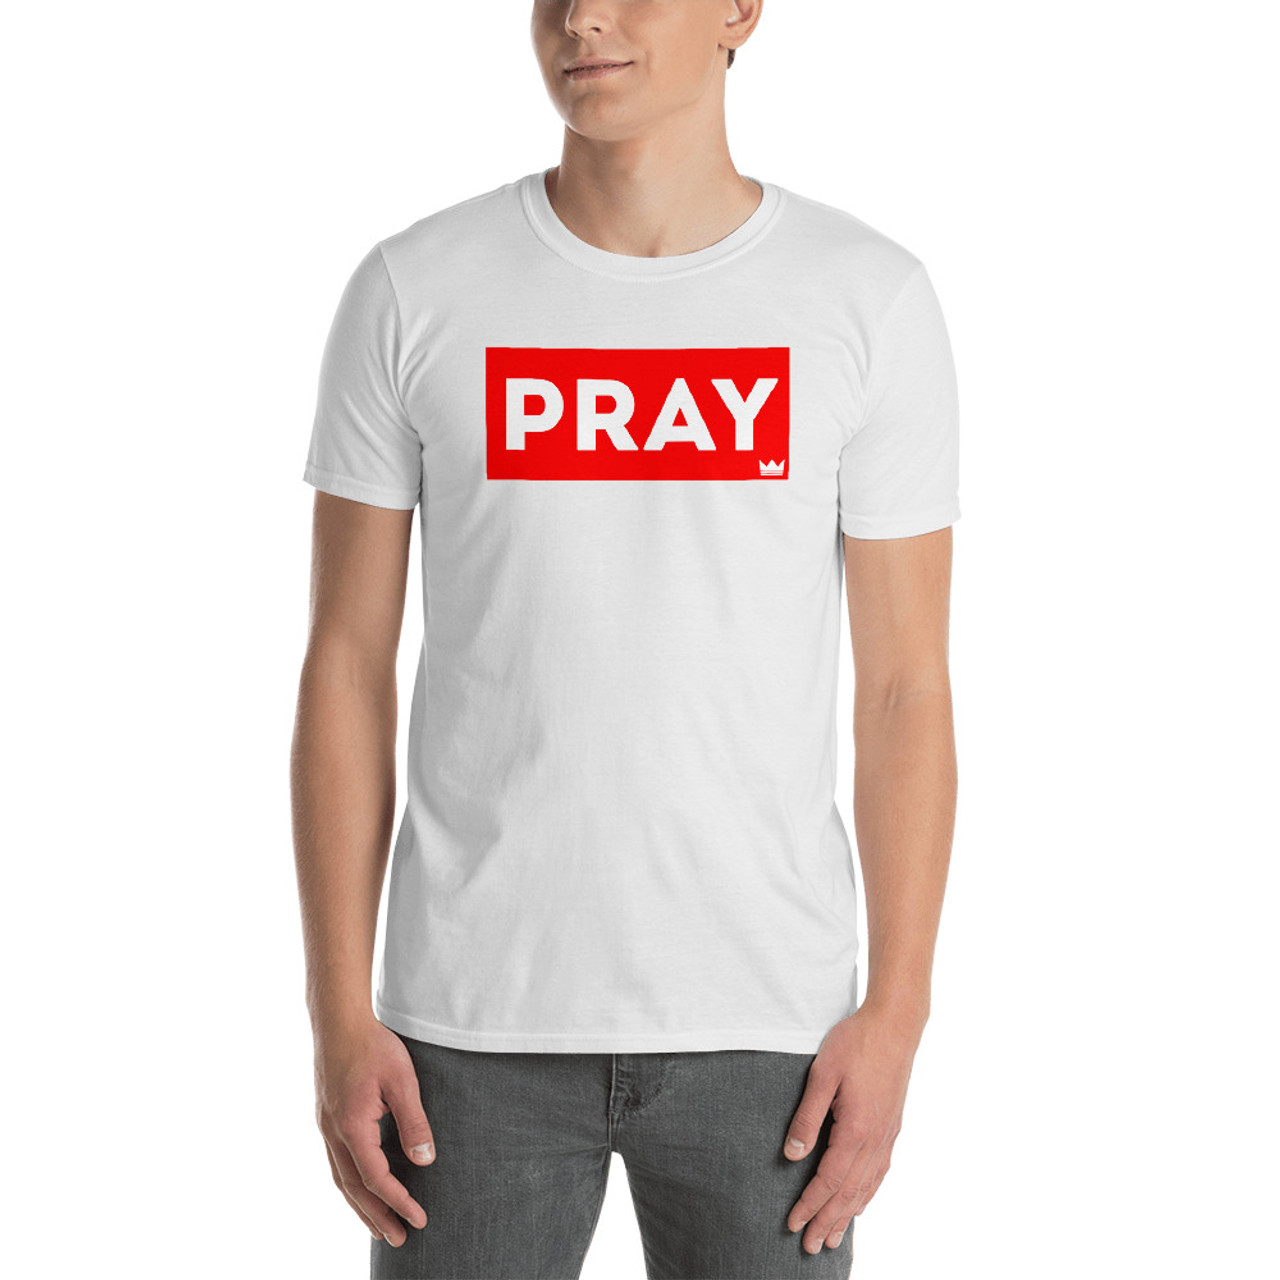 PRAY Box Tee - Short Sleeve Unisex T-Shirt